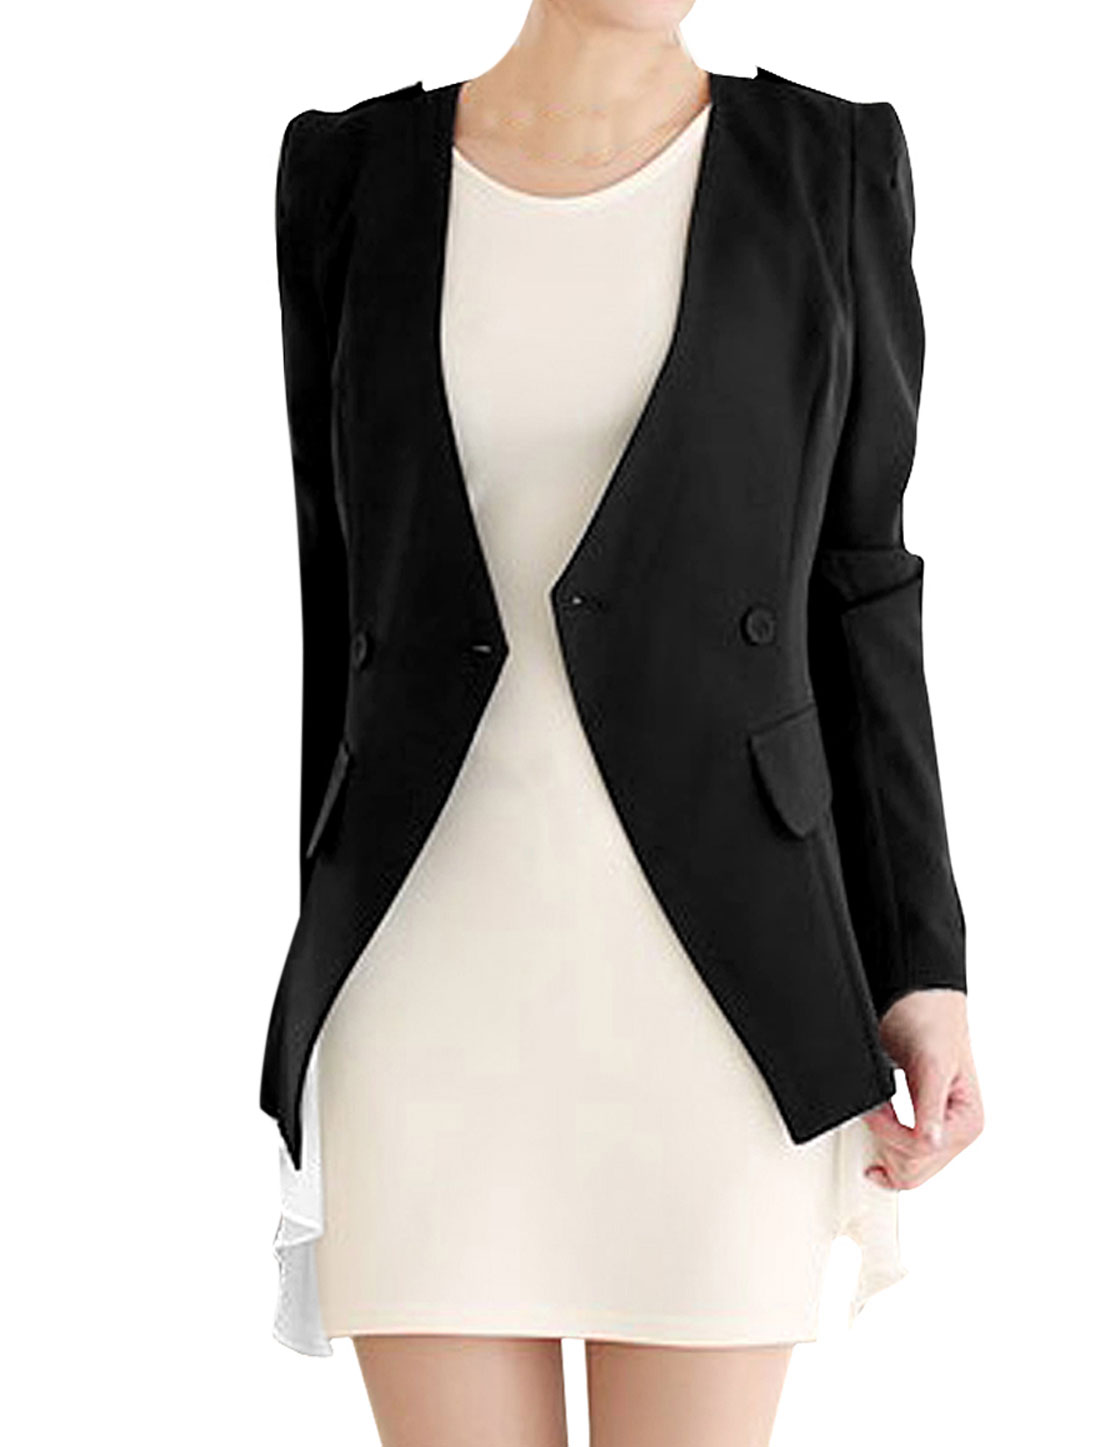 Women's Double Breasted Long-sleeved Layered Design Special Blazer Coat Black S